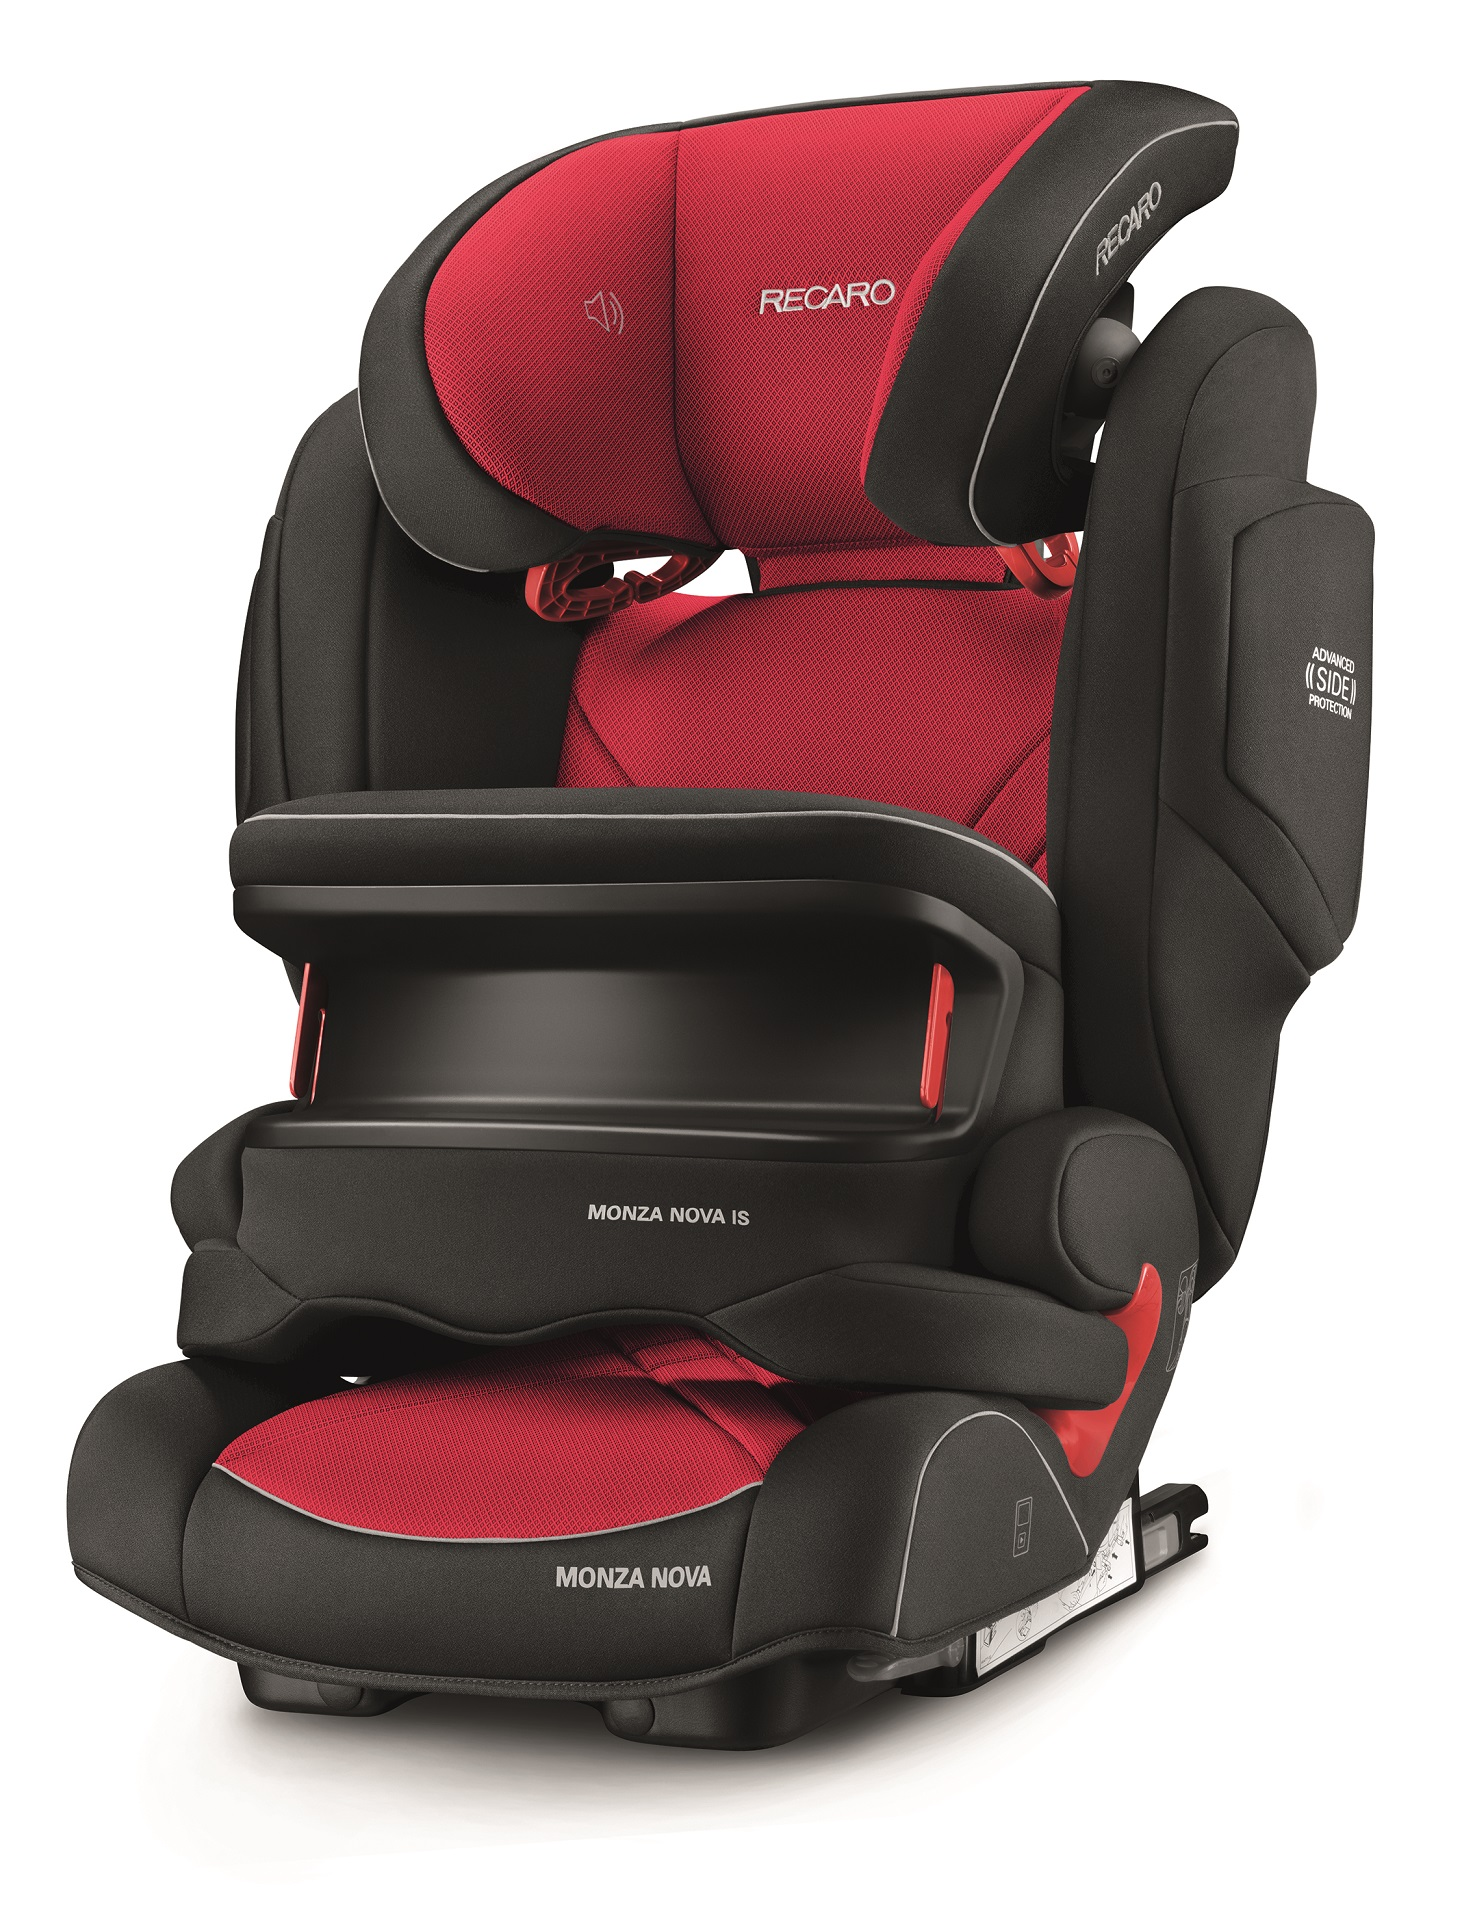 Si ge enfant monza nova is seatfix par recaro 2018 racing for Siege enfant